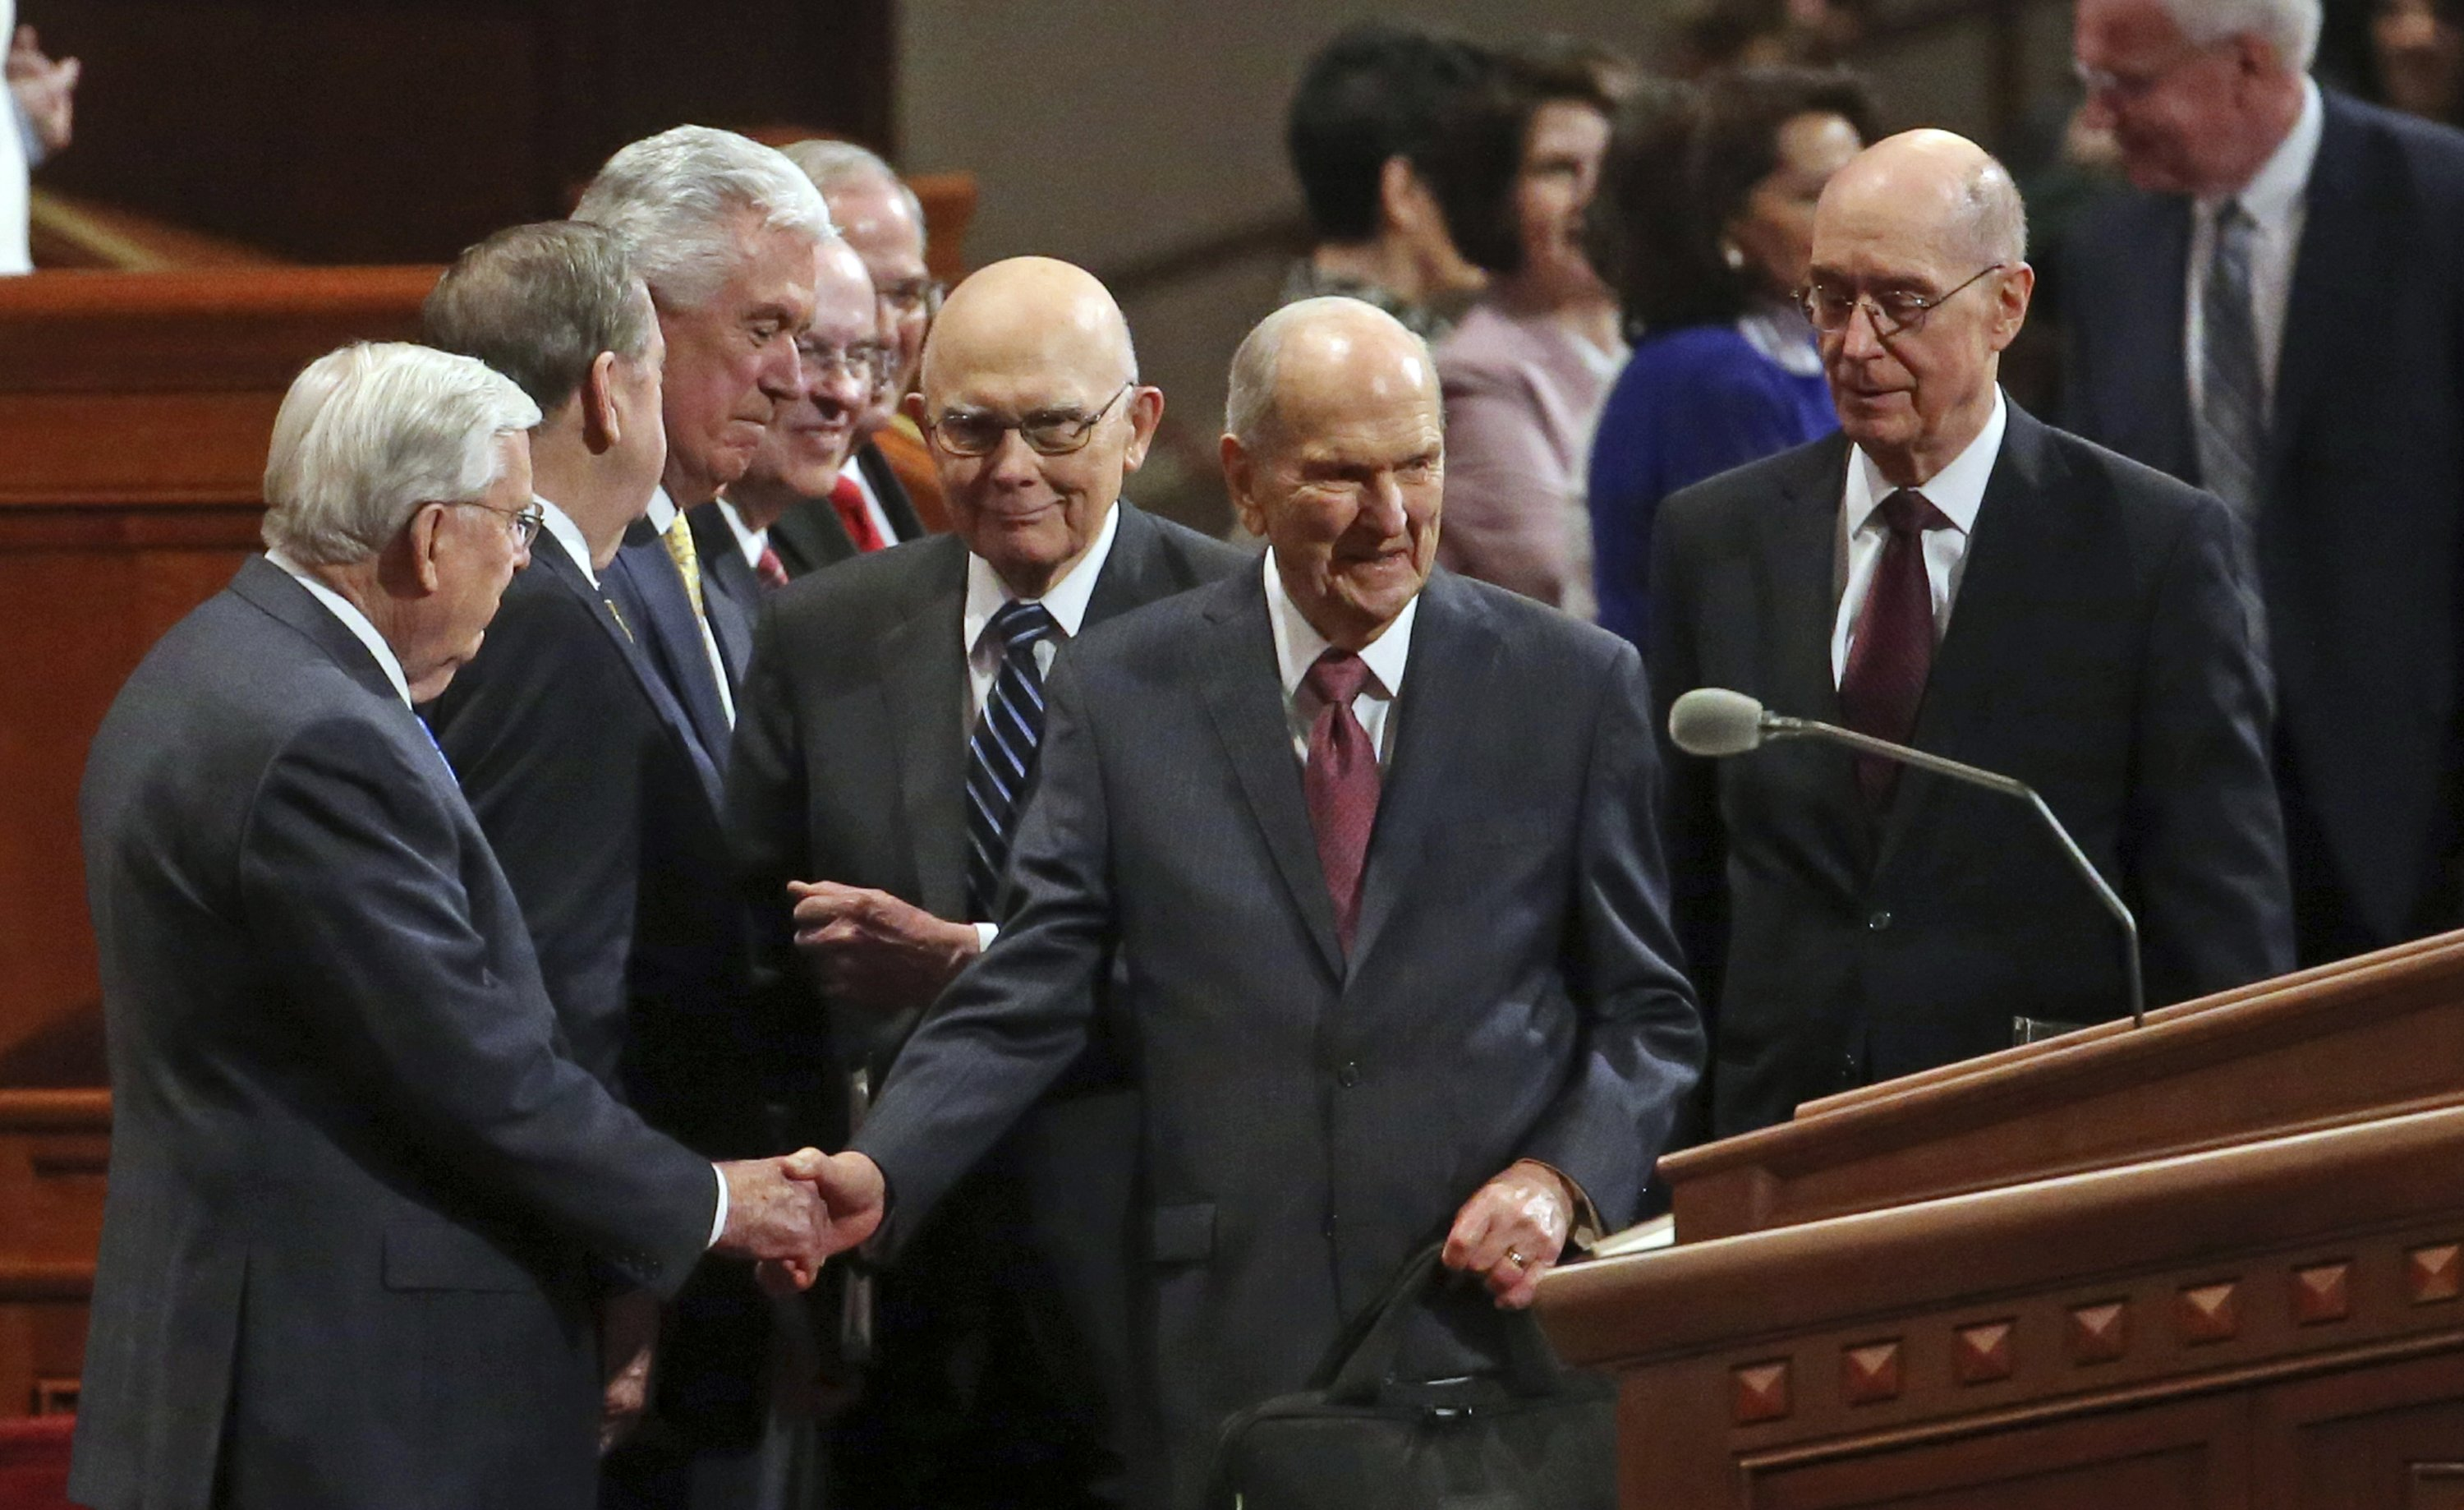 Mormon leaders talk spirituality, not changes, at conference